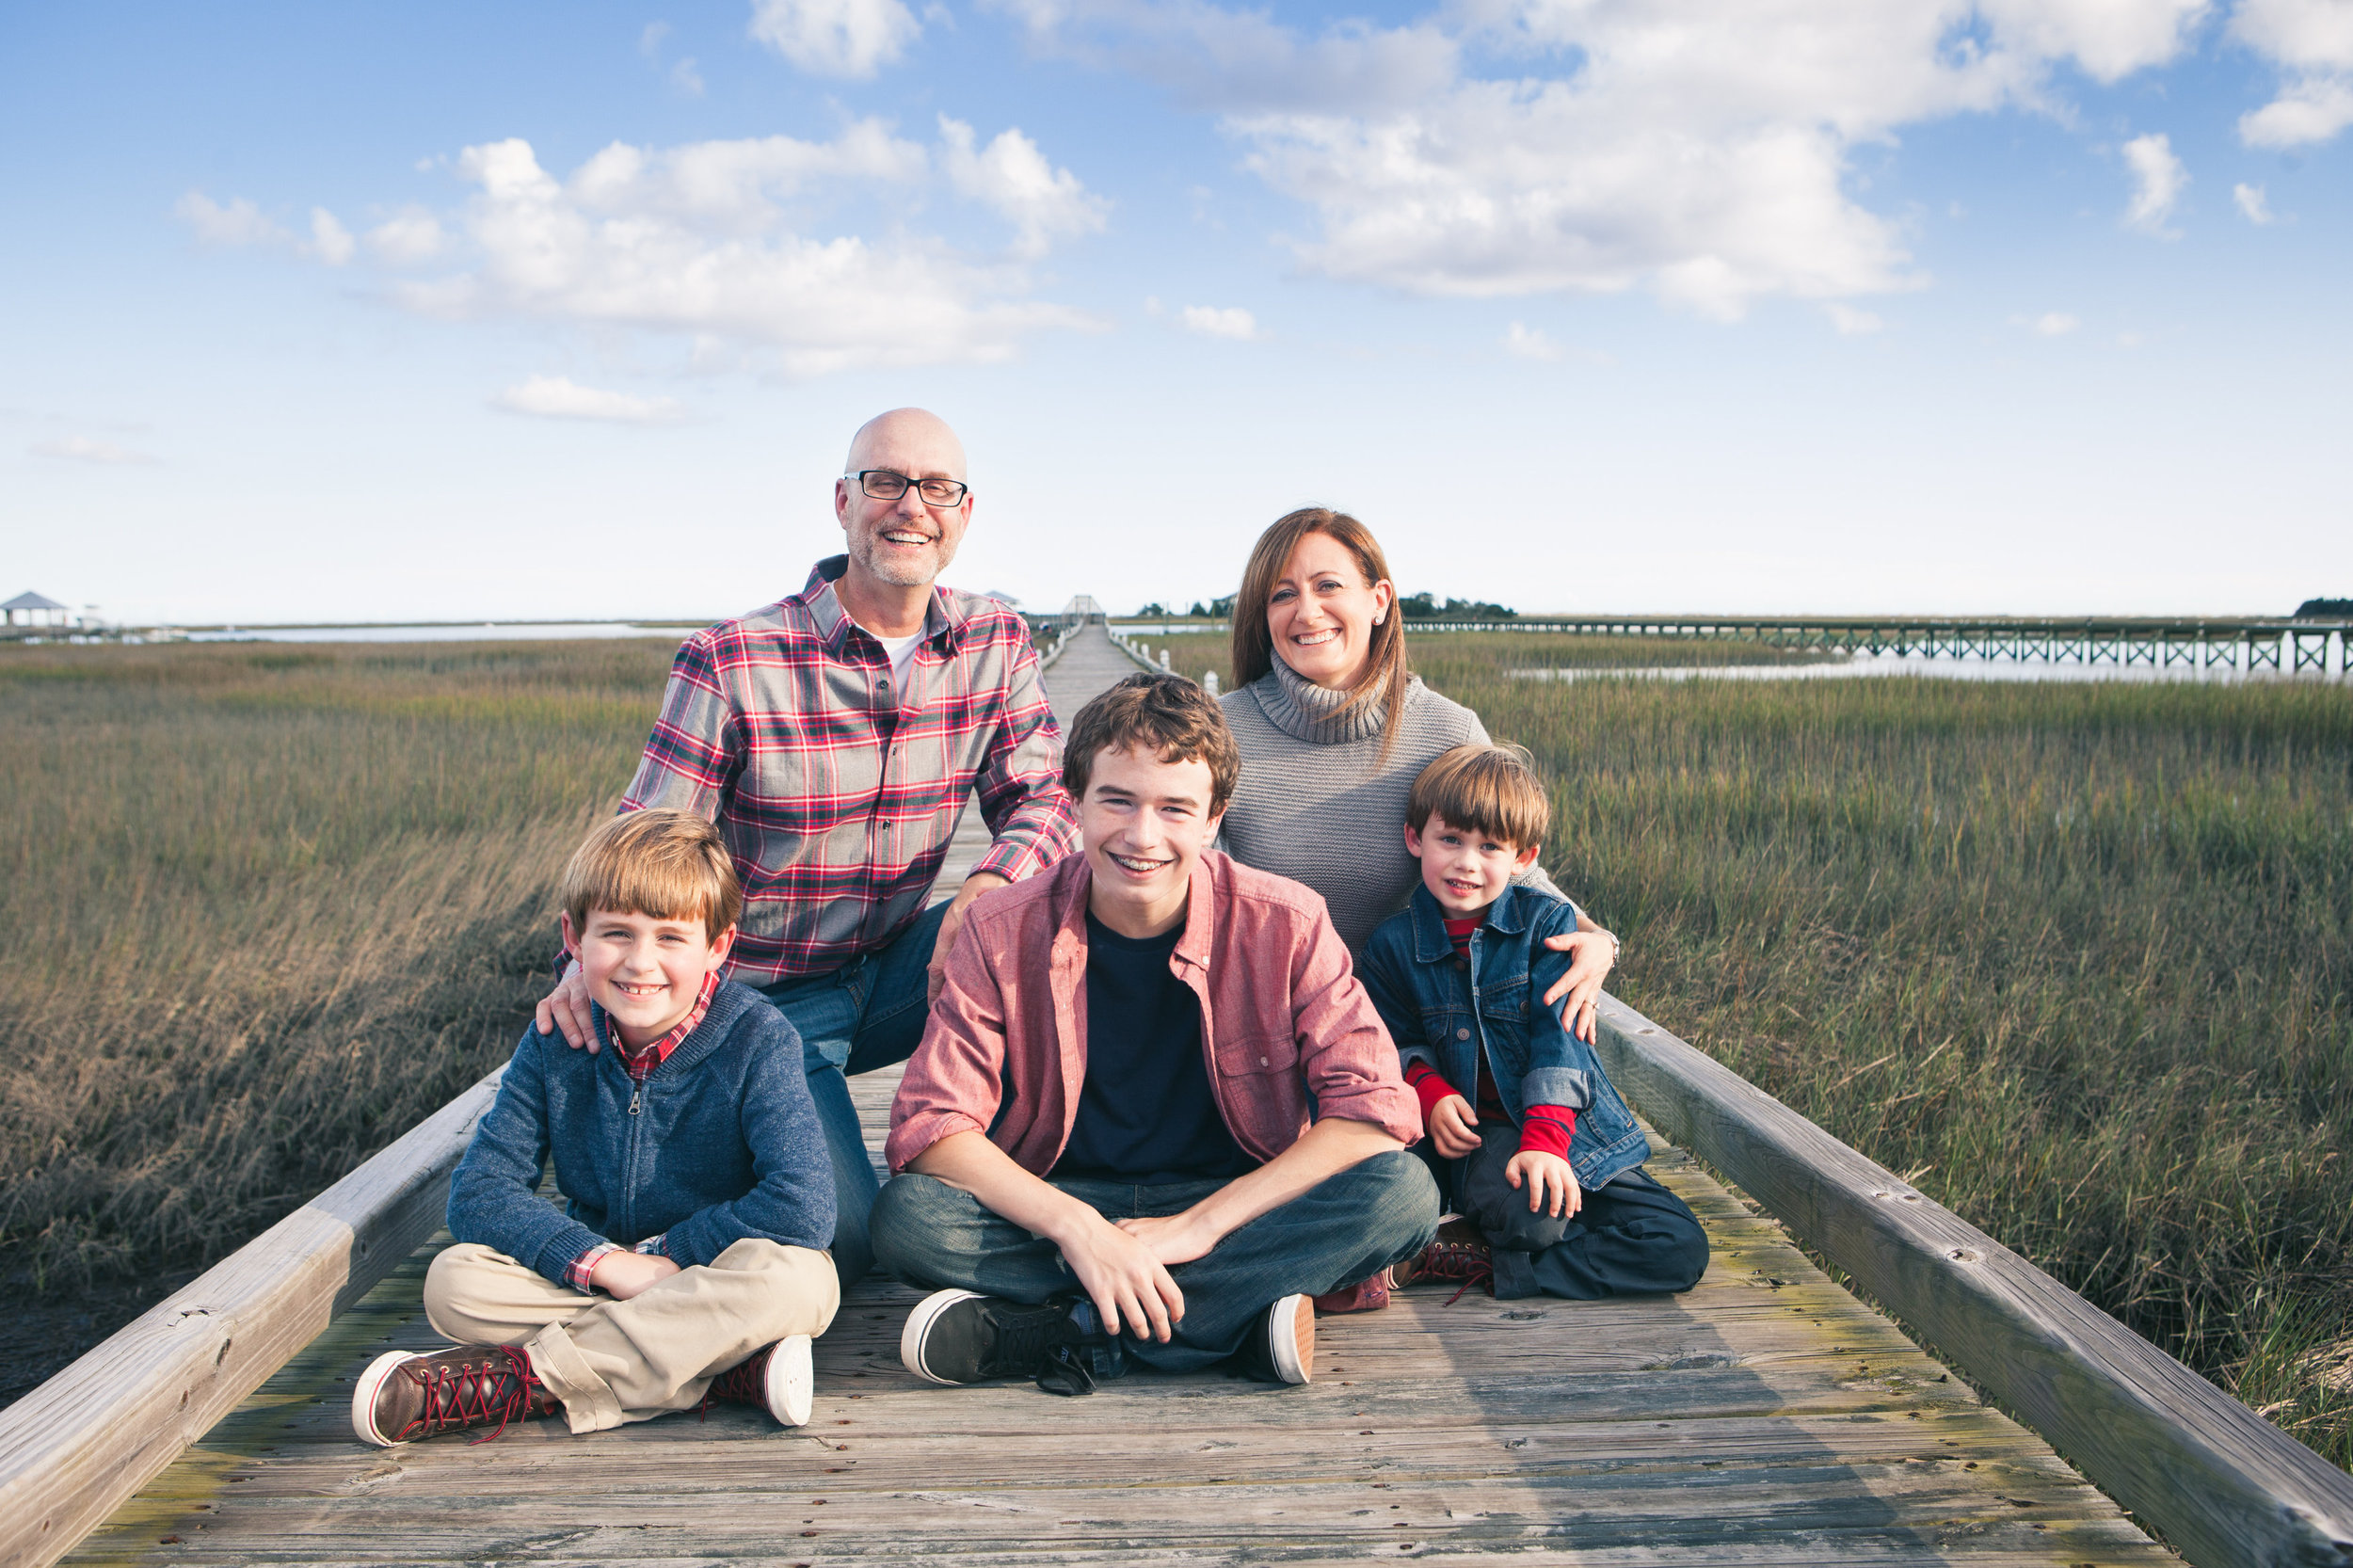 Woodfill Family-High Res for Print-0055.jpg